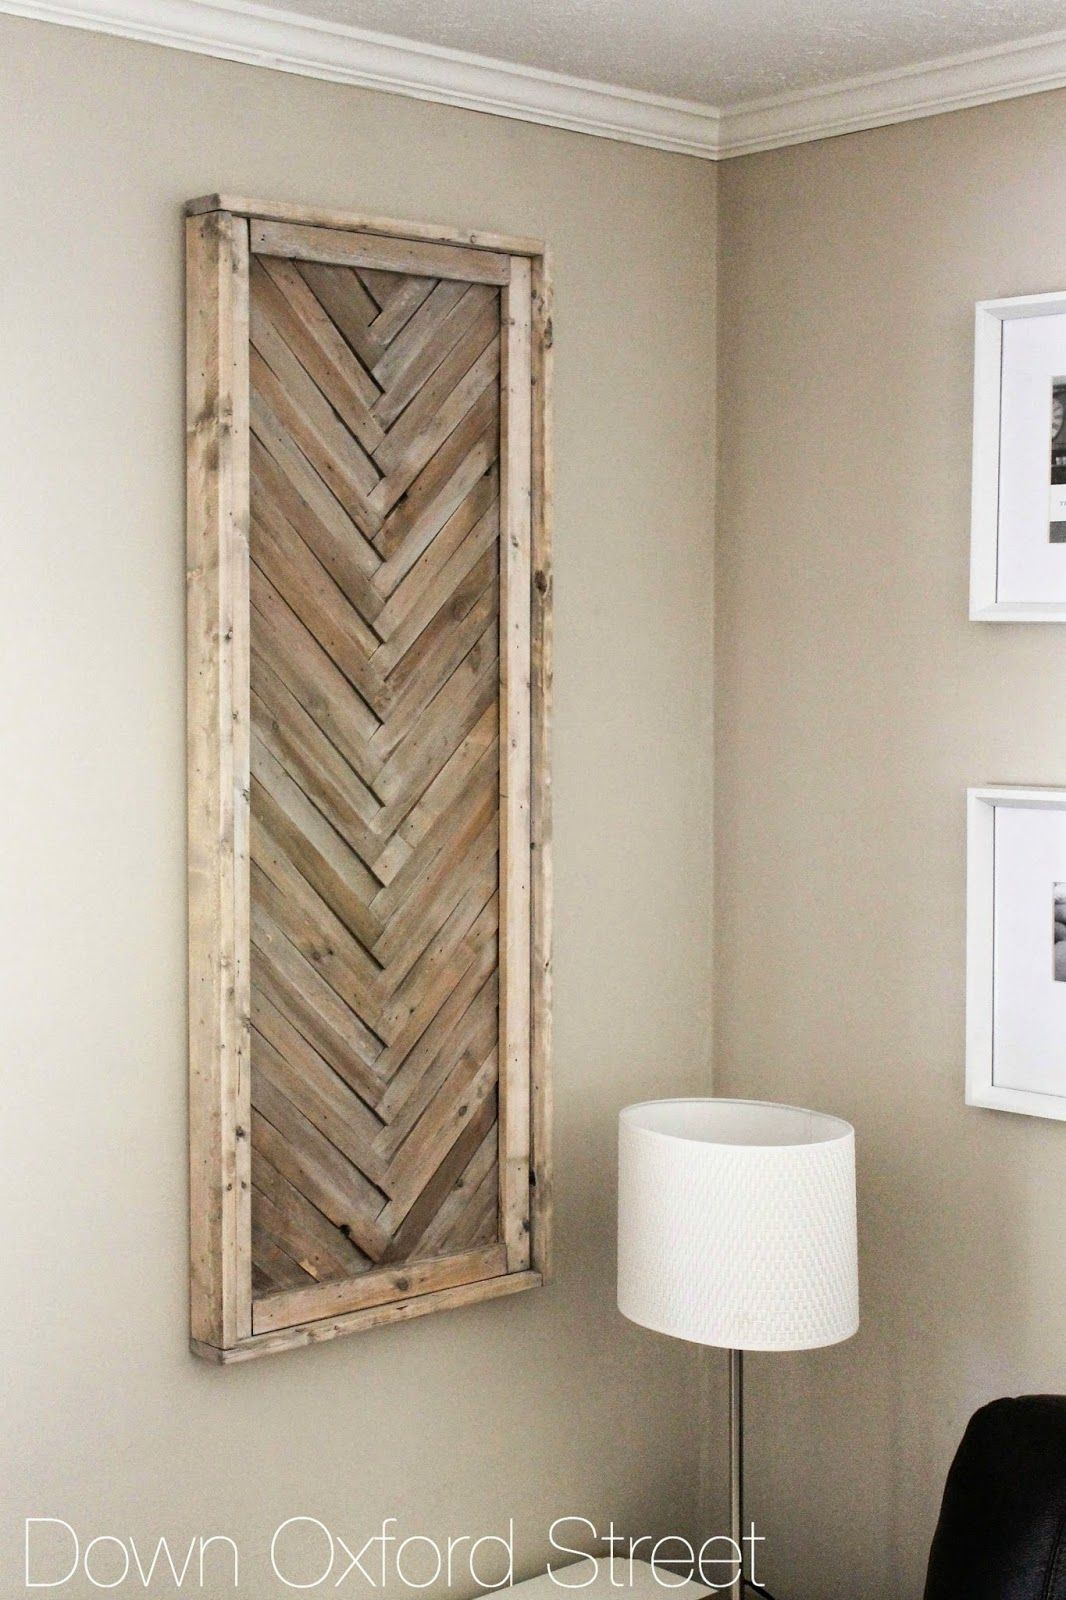 Down Oxford Street: DIY Wood Shim Wall Art | DIY {Home Decor ...